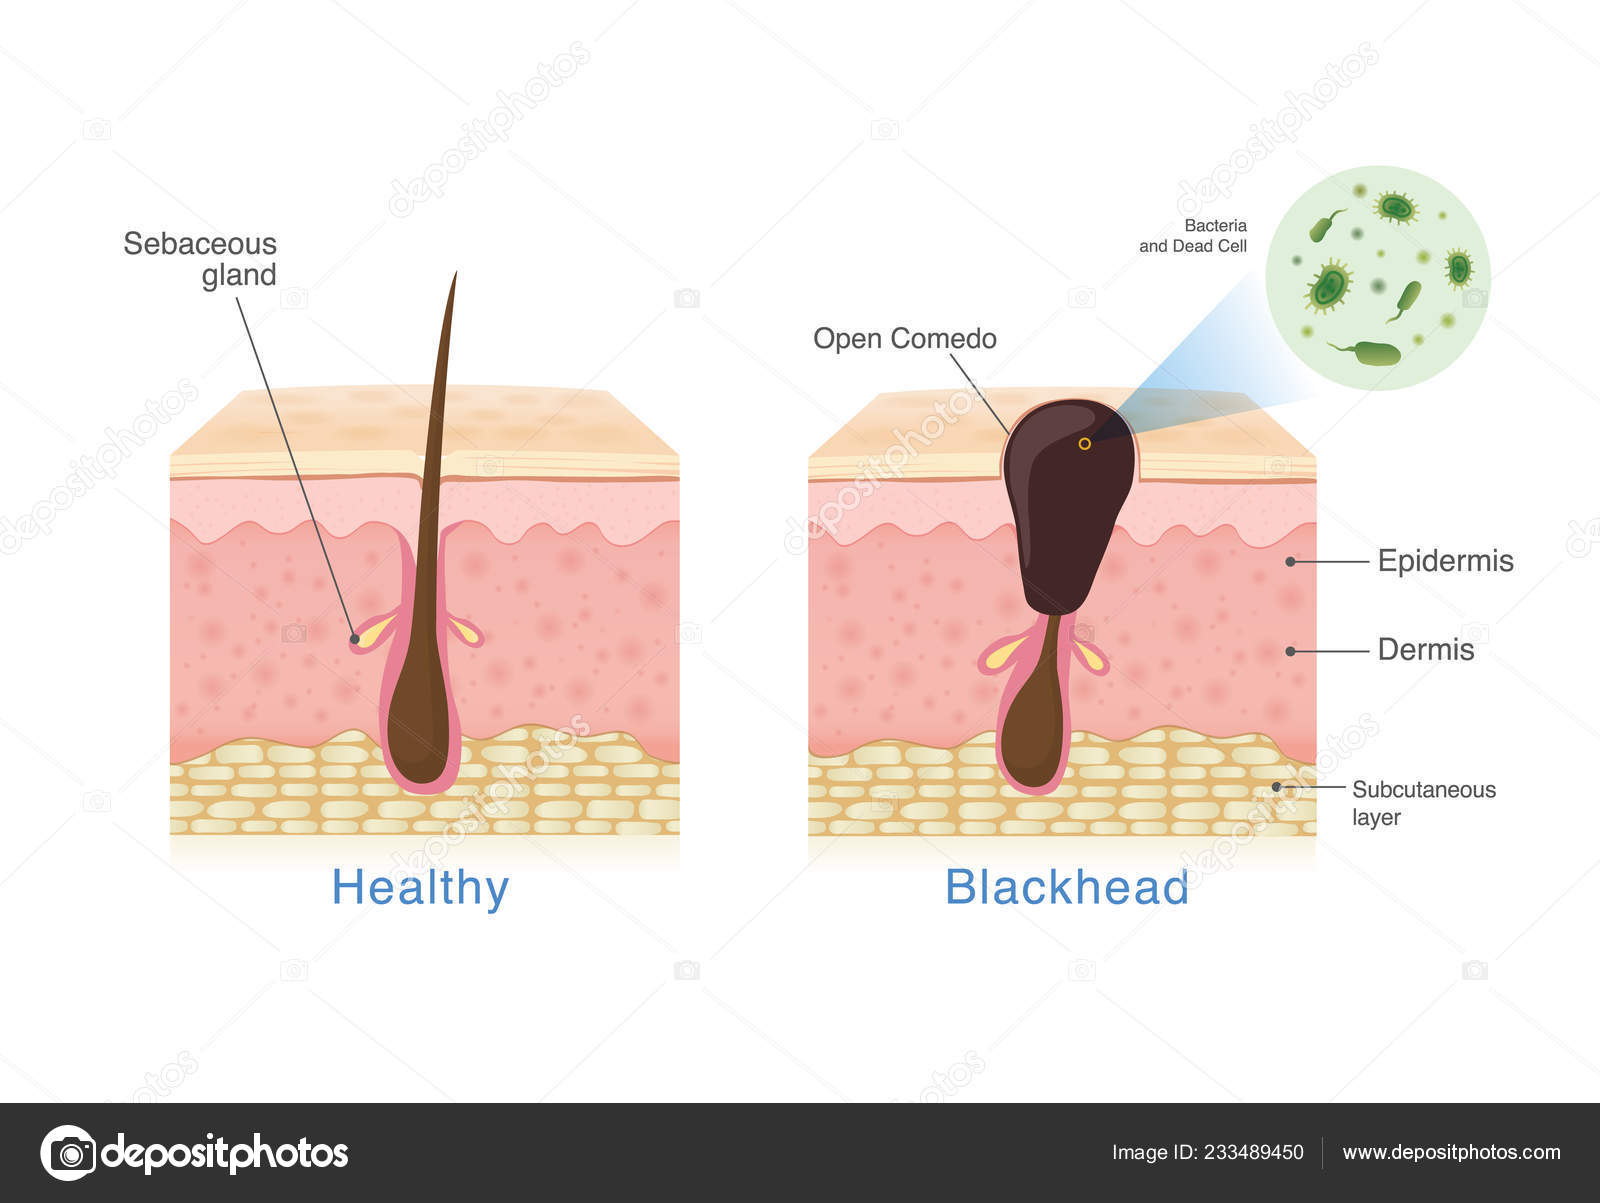 hight resolution of  healthy skinbacteria in blackhead with human skin layer structure and healthy skin illustration about dermatology diagram u2014 vector by solar22